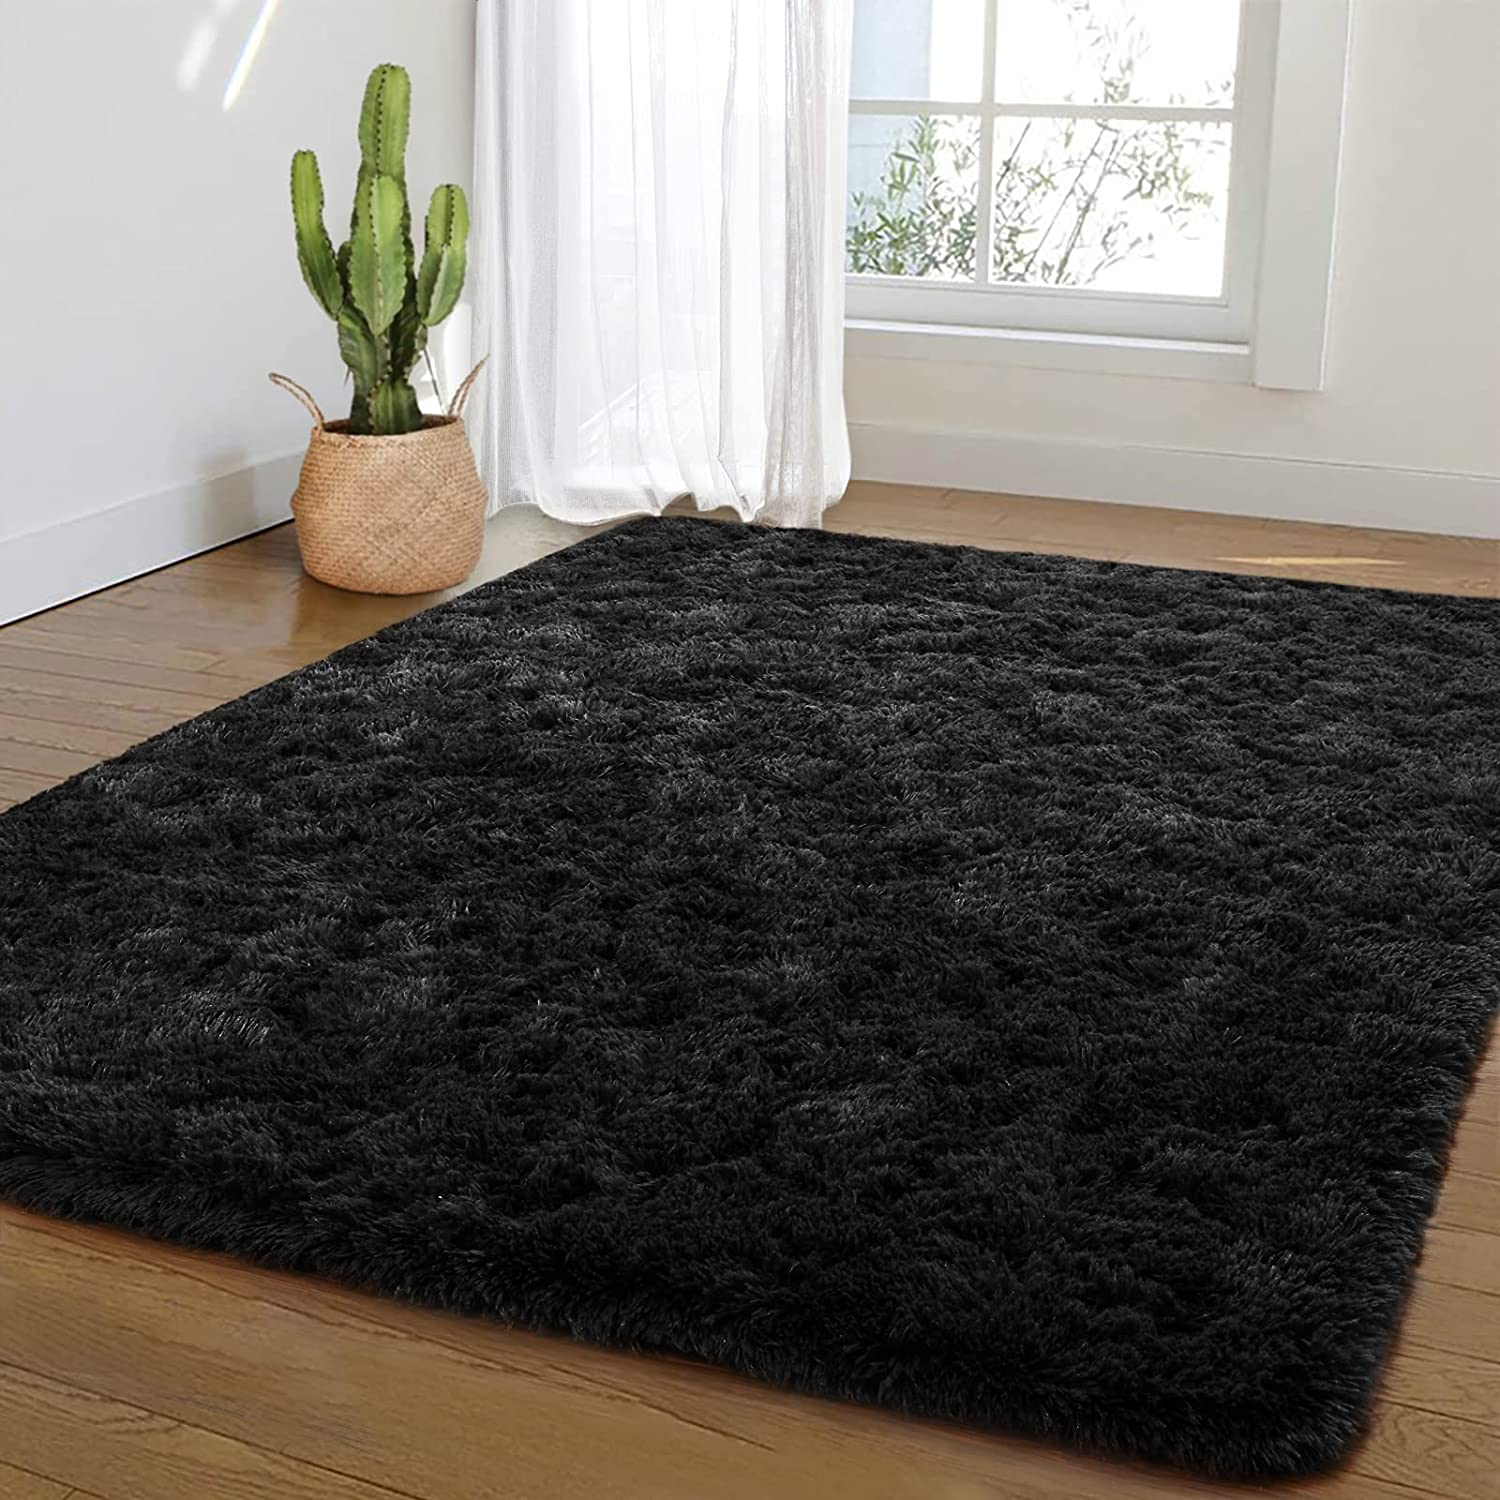 OFFicial Max 80% OFF Beraliy Soft Bedroom Area Rugs for Living Room Shag Plush Fluffy